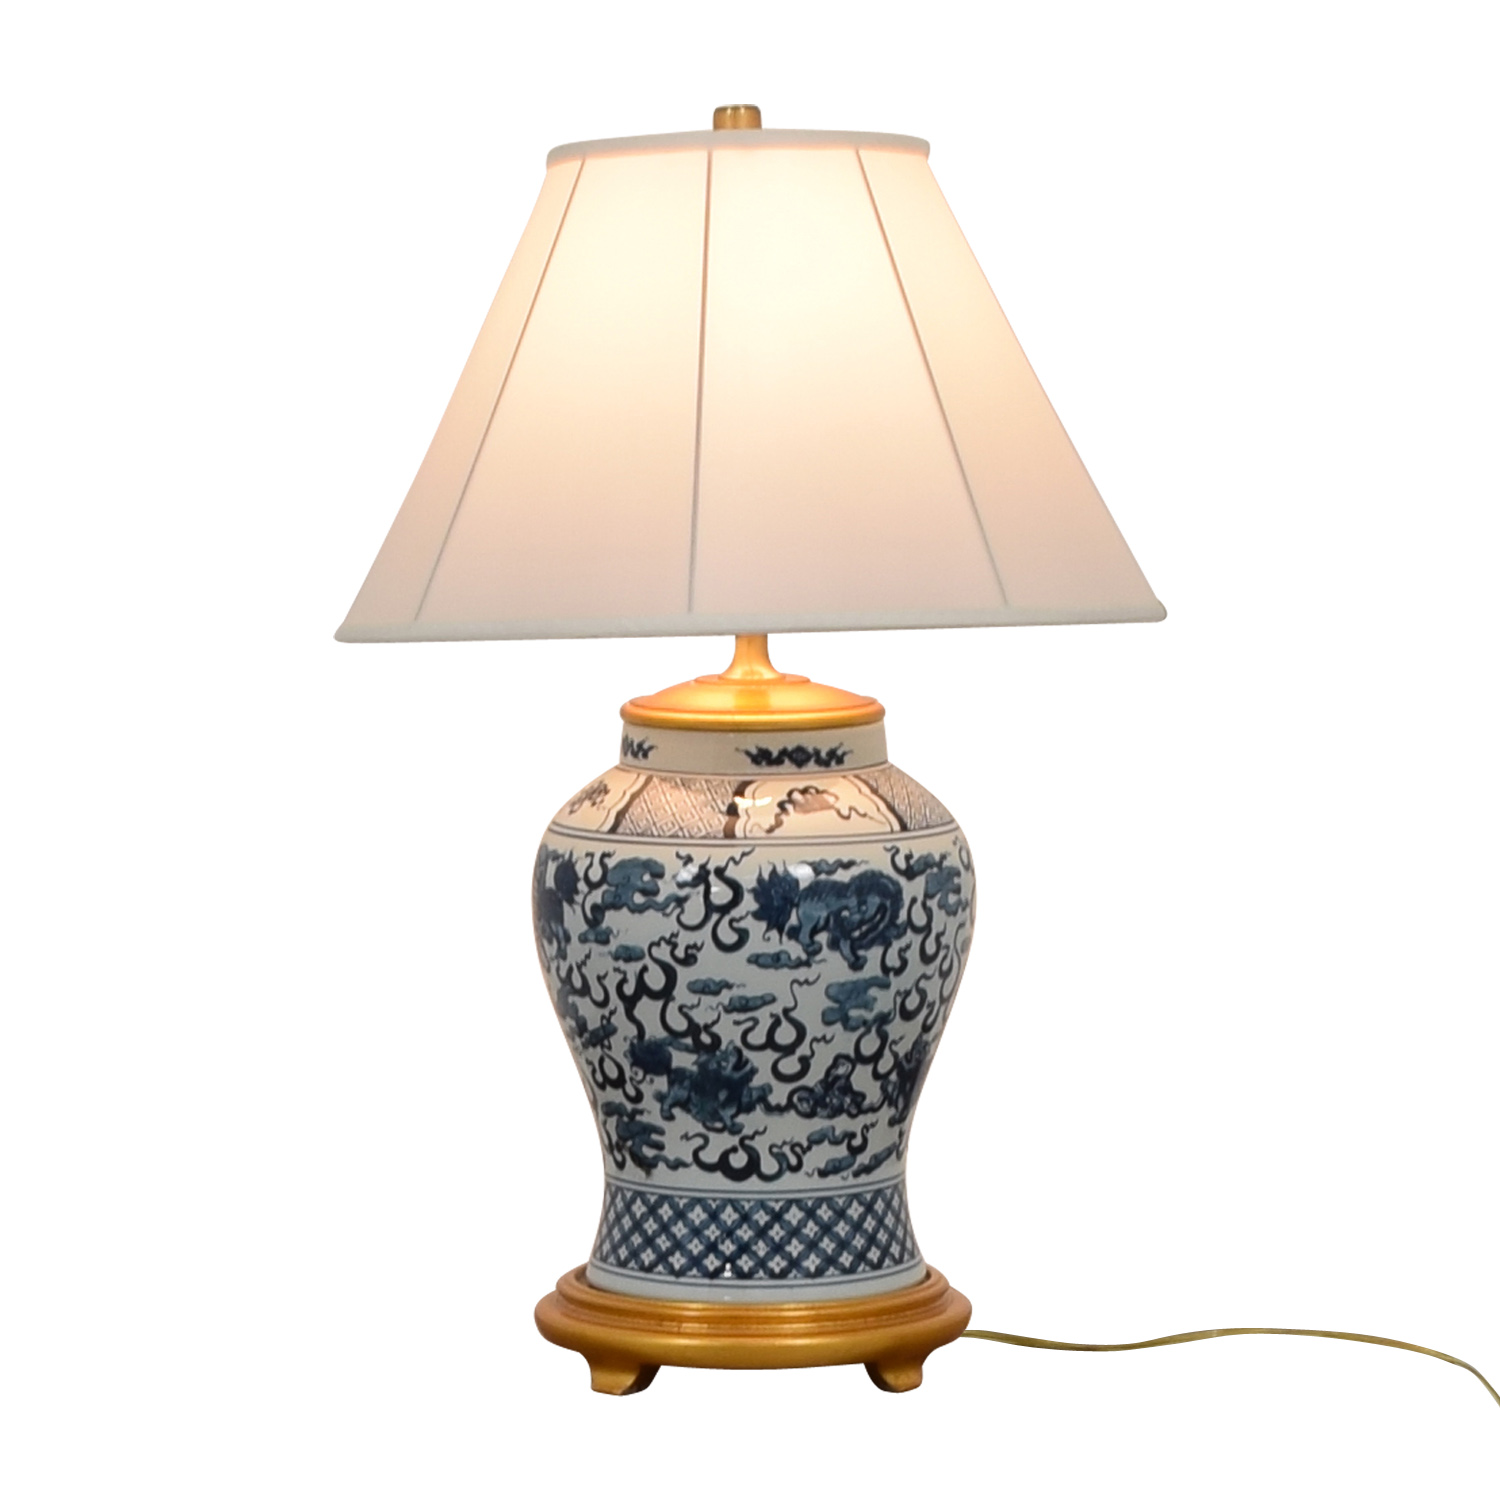 Lamps used lamps for sale buy ralph lauren ralph lauren asian blue and white table lamp online aloadofball Image collections